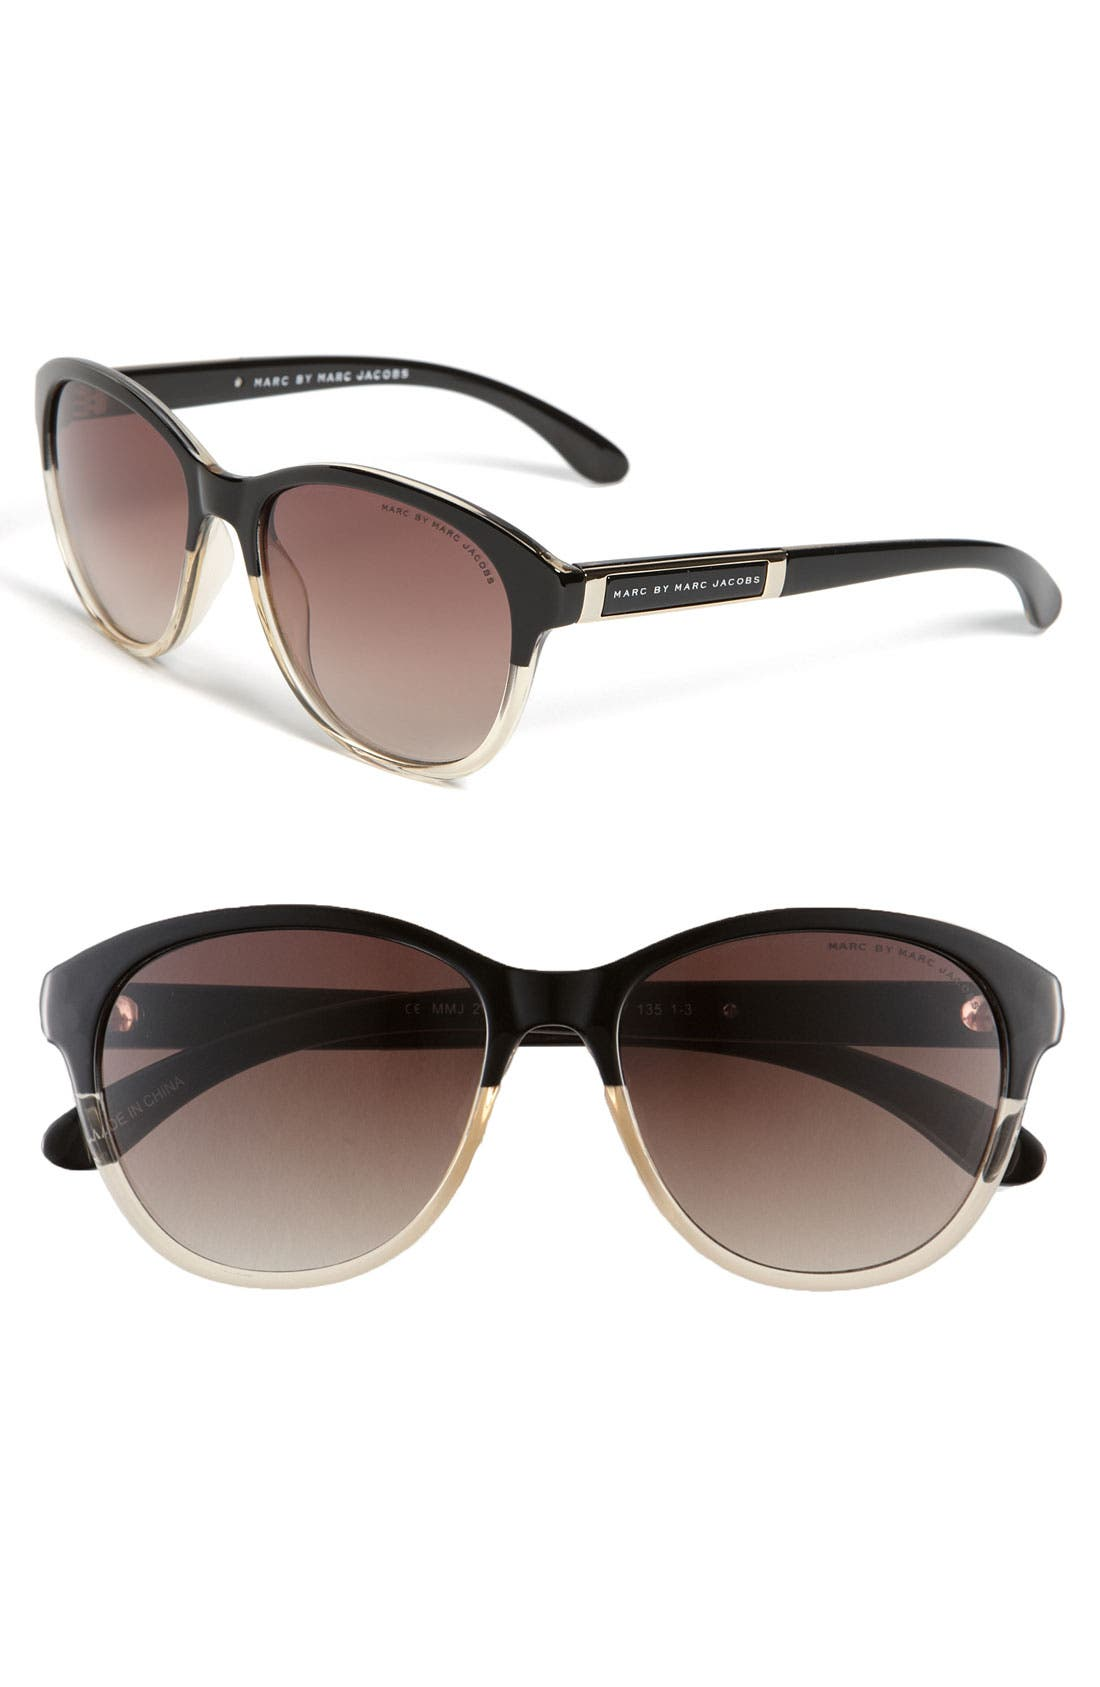 Alternate Image 1 Selected - MARC BY MARC JACOBS Retro Plastic Sunglasses